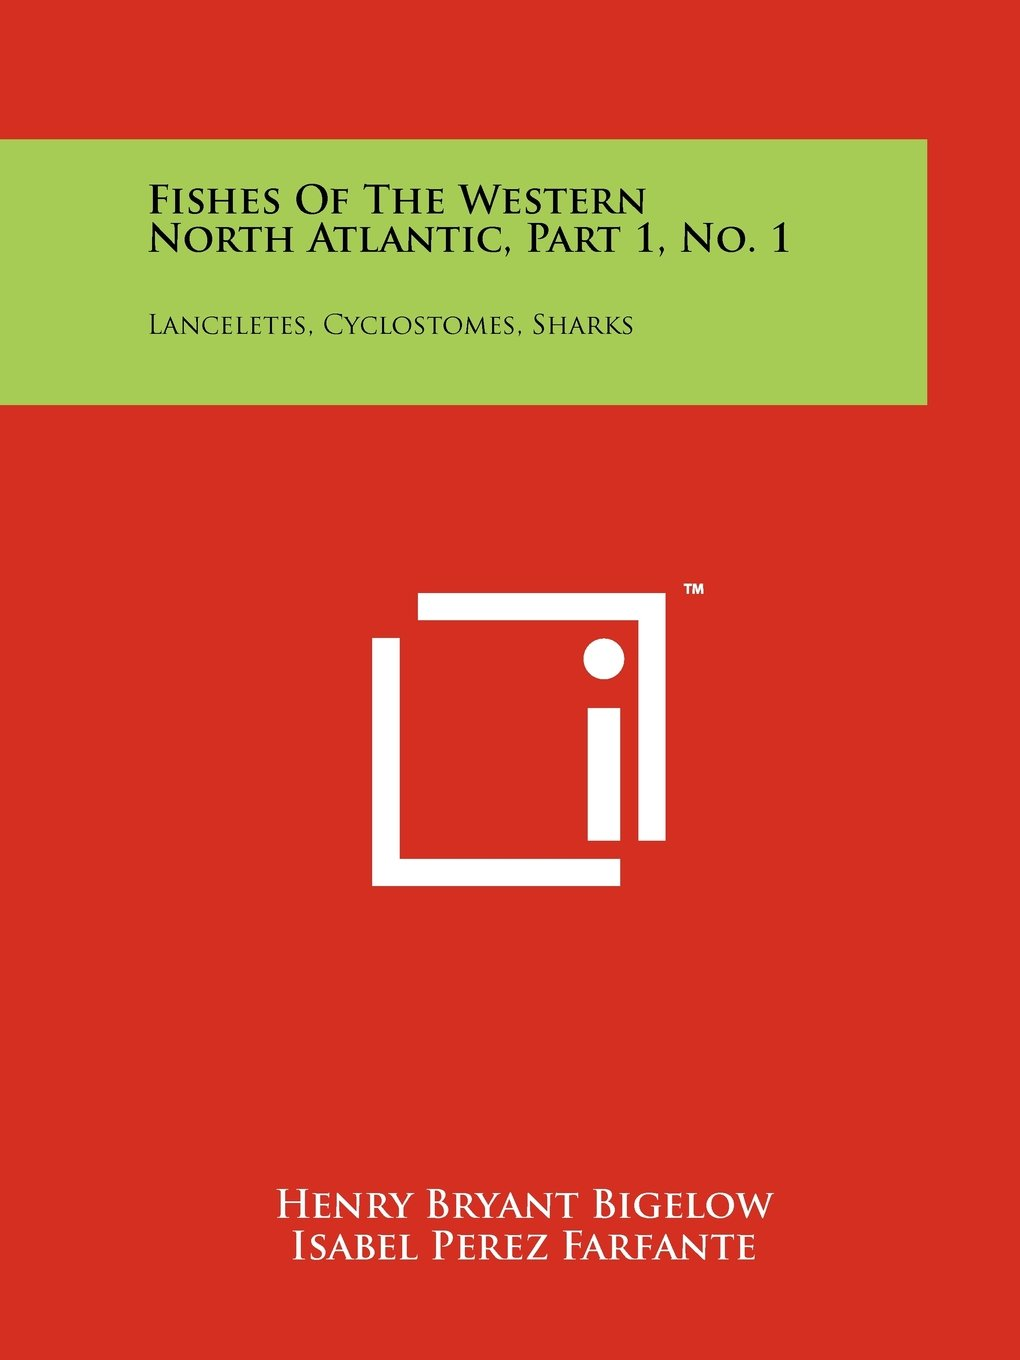 Download Fishes Of The Western North Atlantic, Part 1, No. 1: Lanceletes, Cyclostomes, Sharks pdf epub